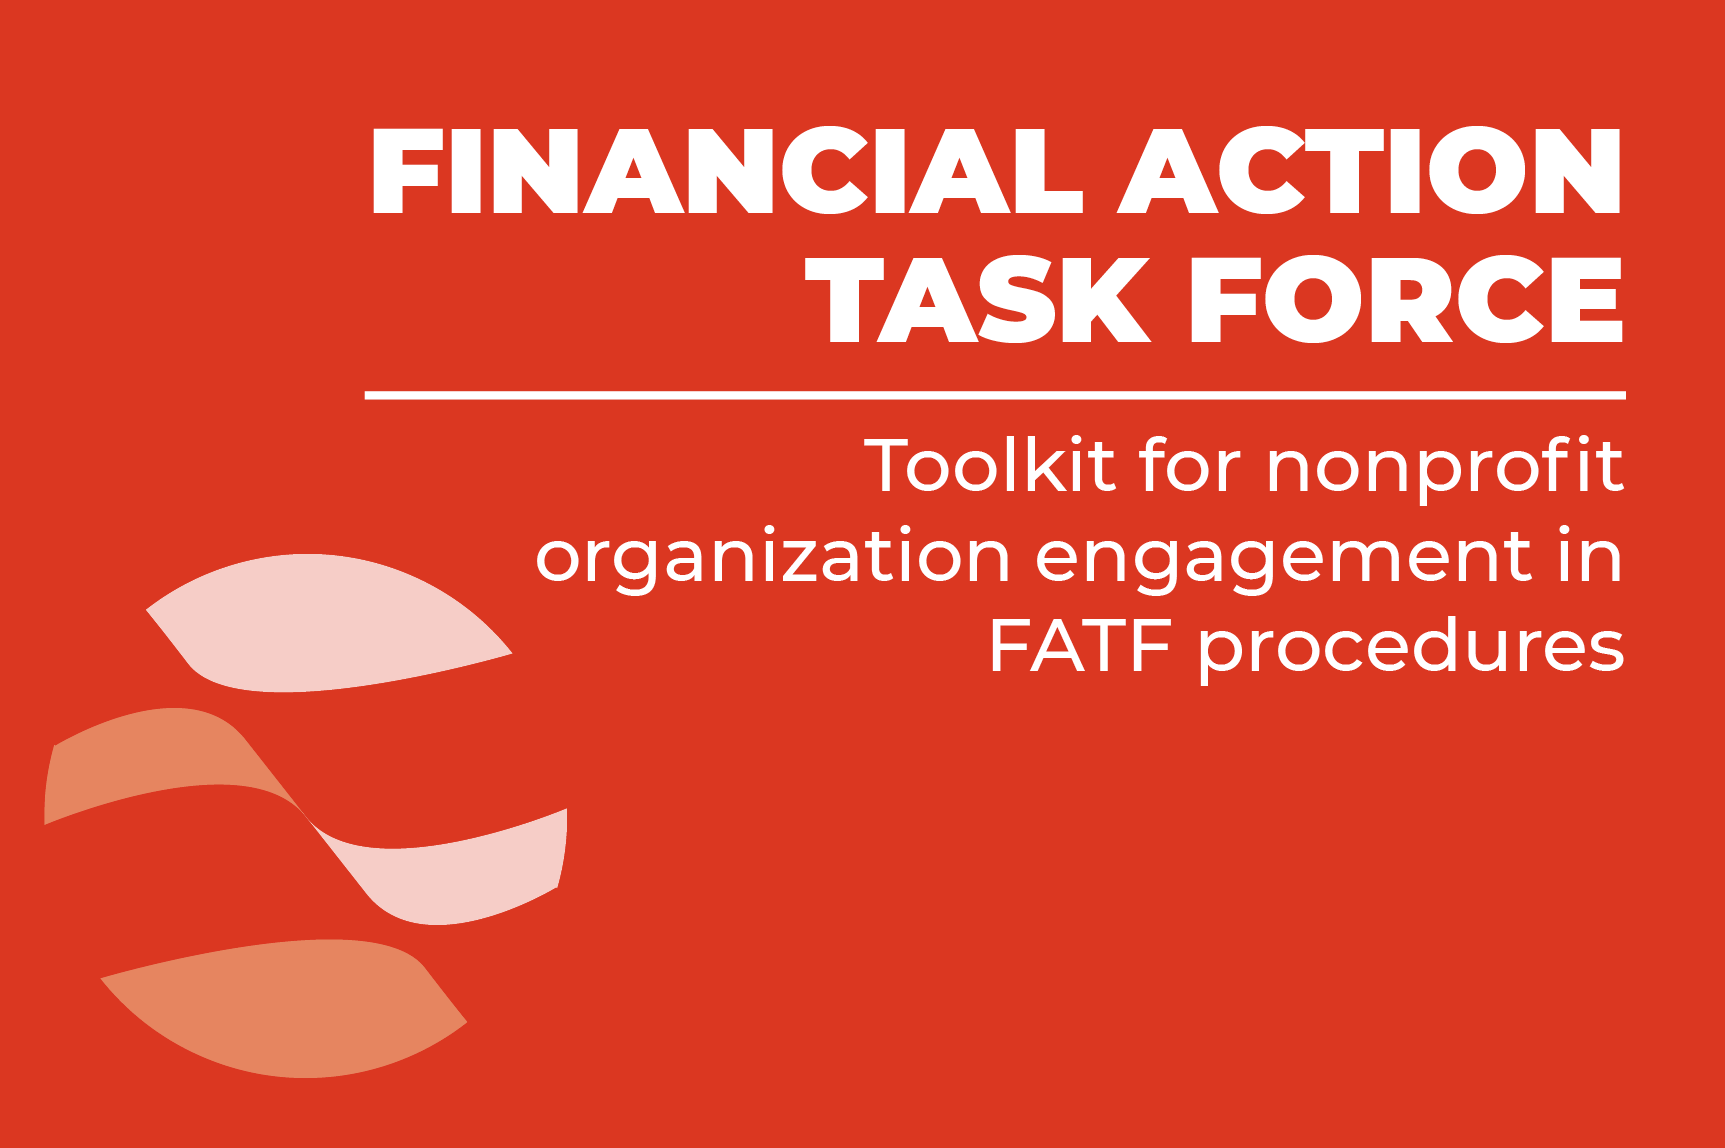 Financial Action Task Force Toolkit: A resource for nonprofit organization engagement in FATF procedures. (Graphic: Jeff Vize/ICNL)